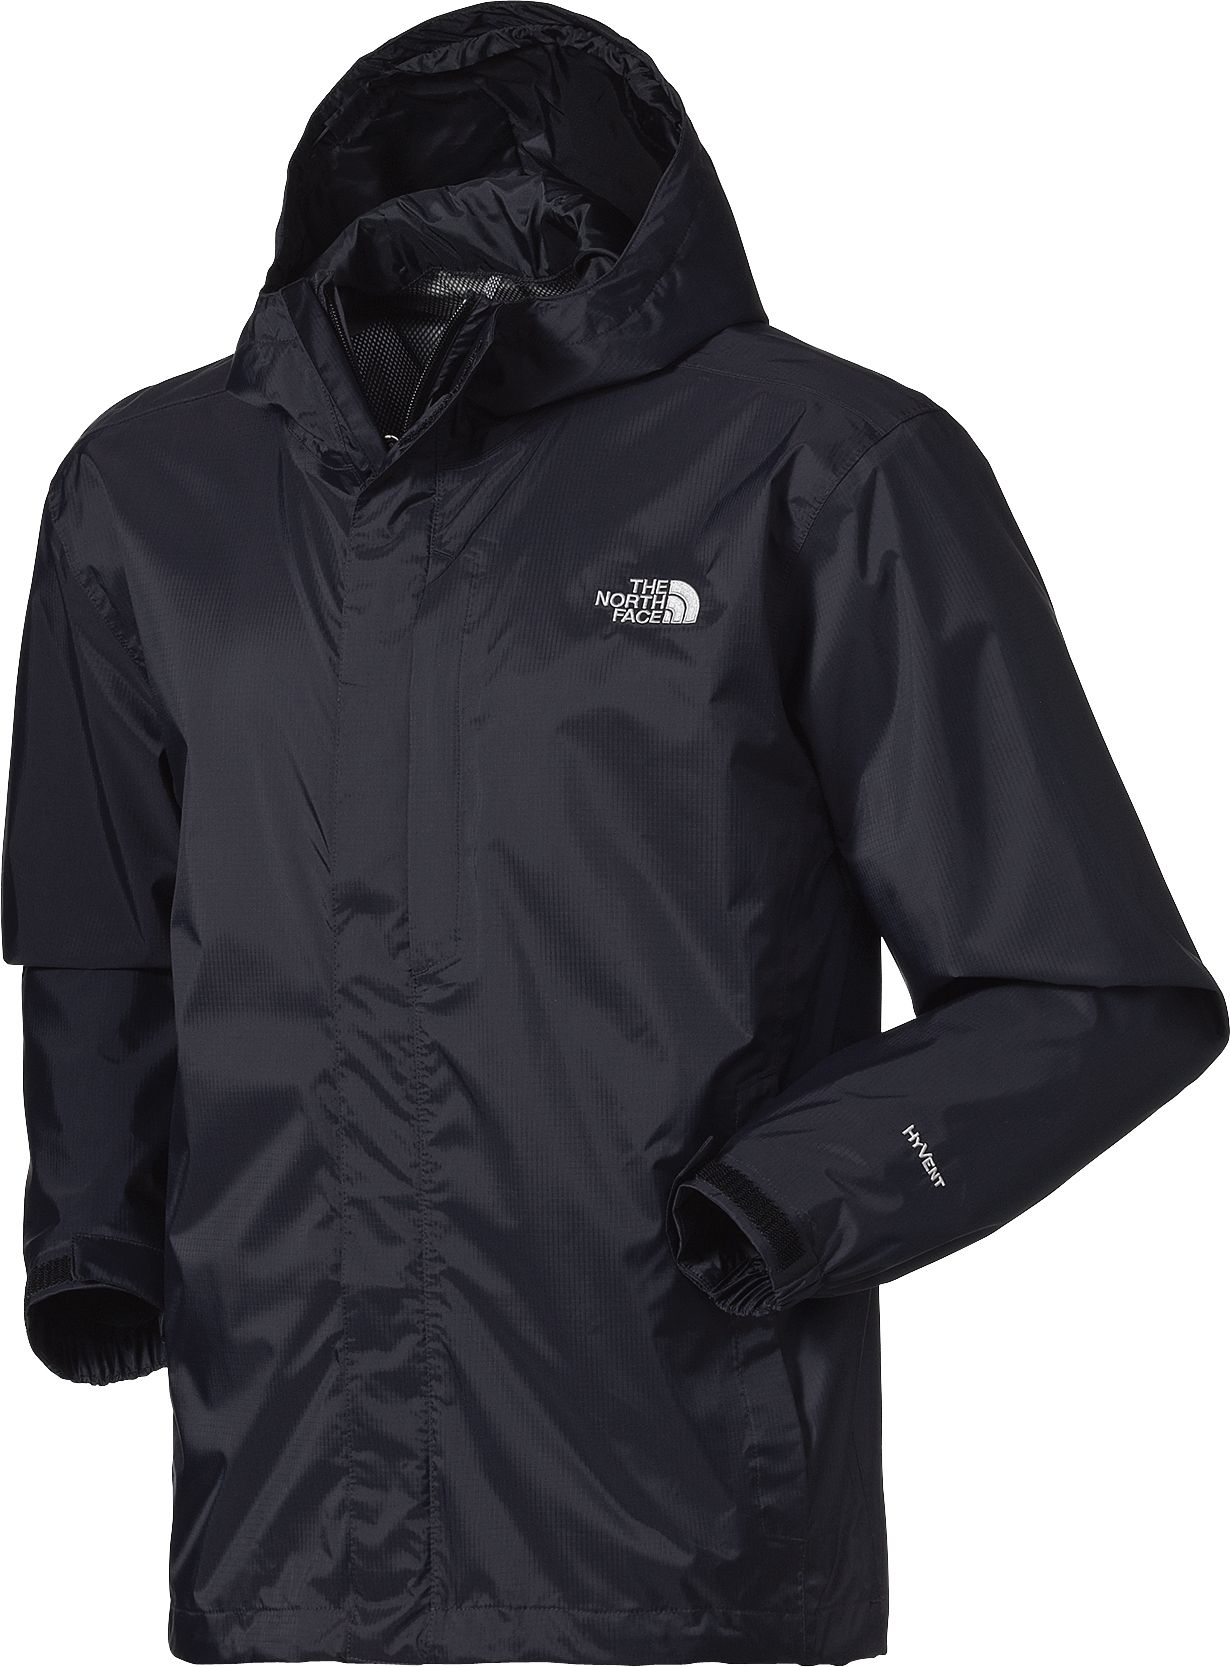 The North Face Men's Stinson Rain Jacket| DICK'S Sporting Goods